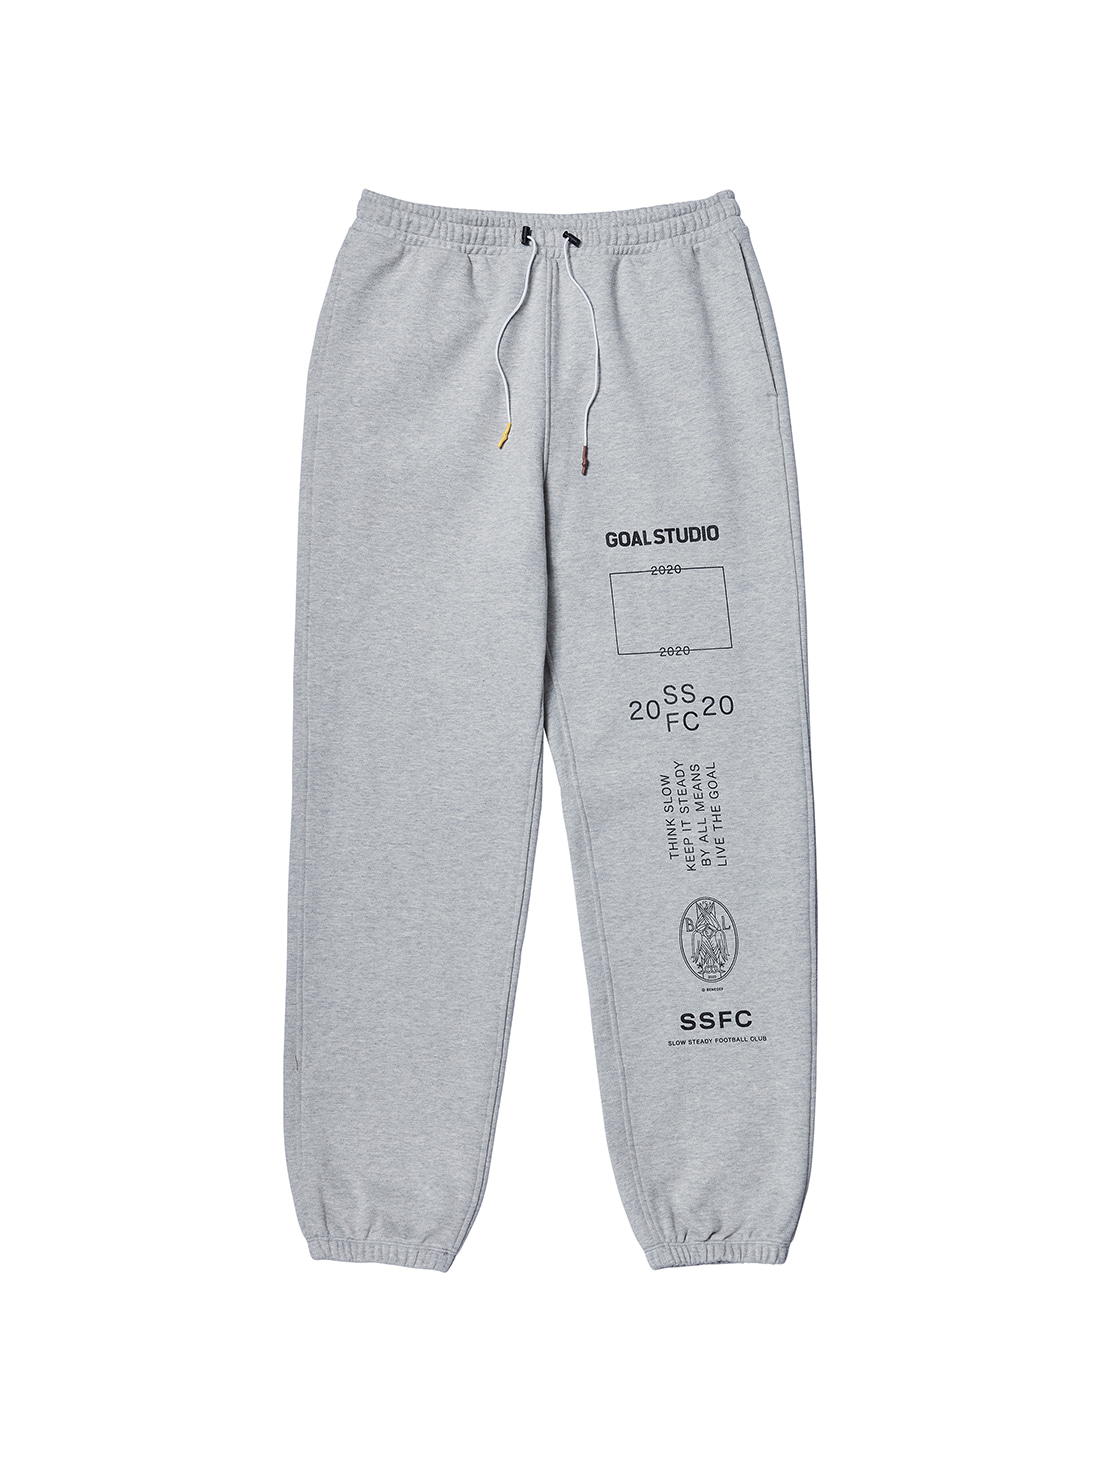 GOALSTUDIO (M,L) SSFC JERSEY PANTS - GREY